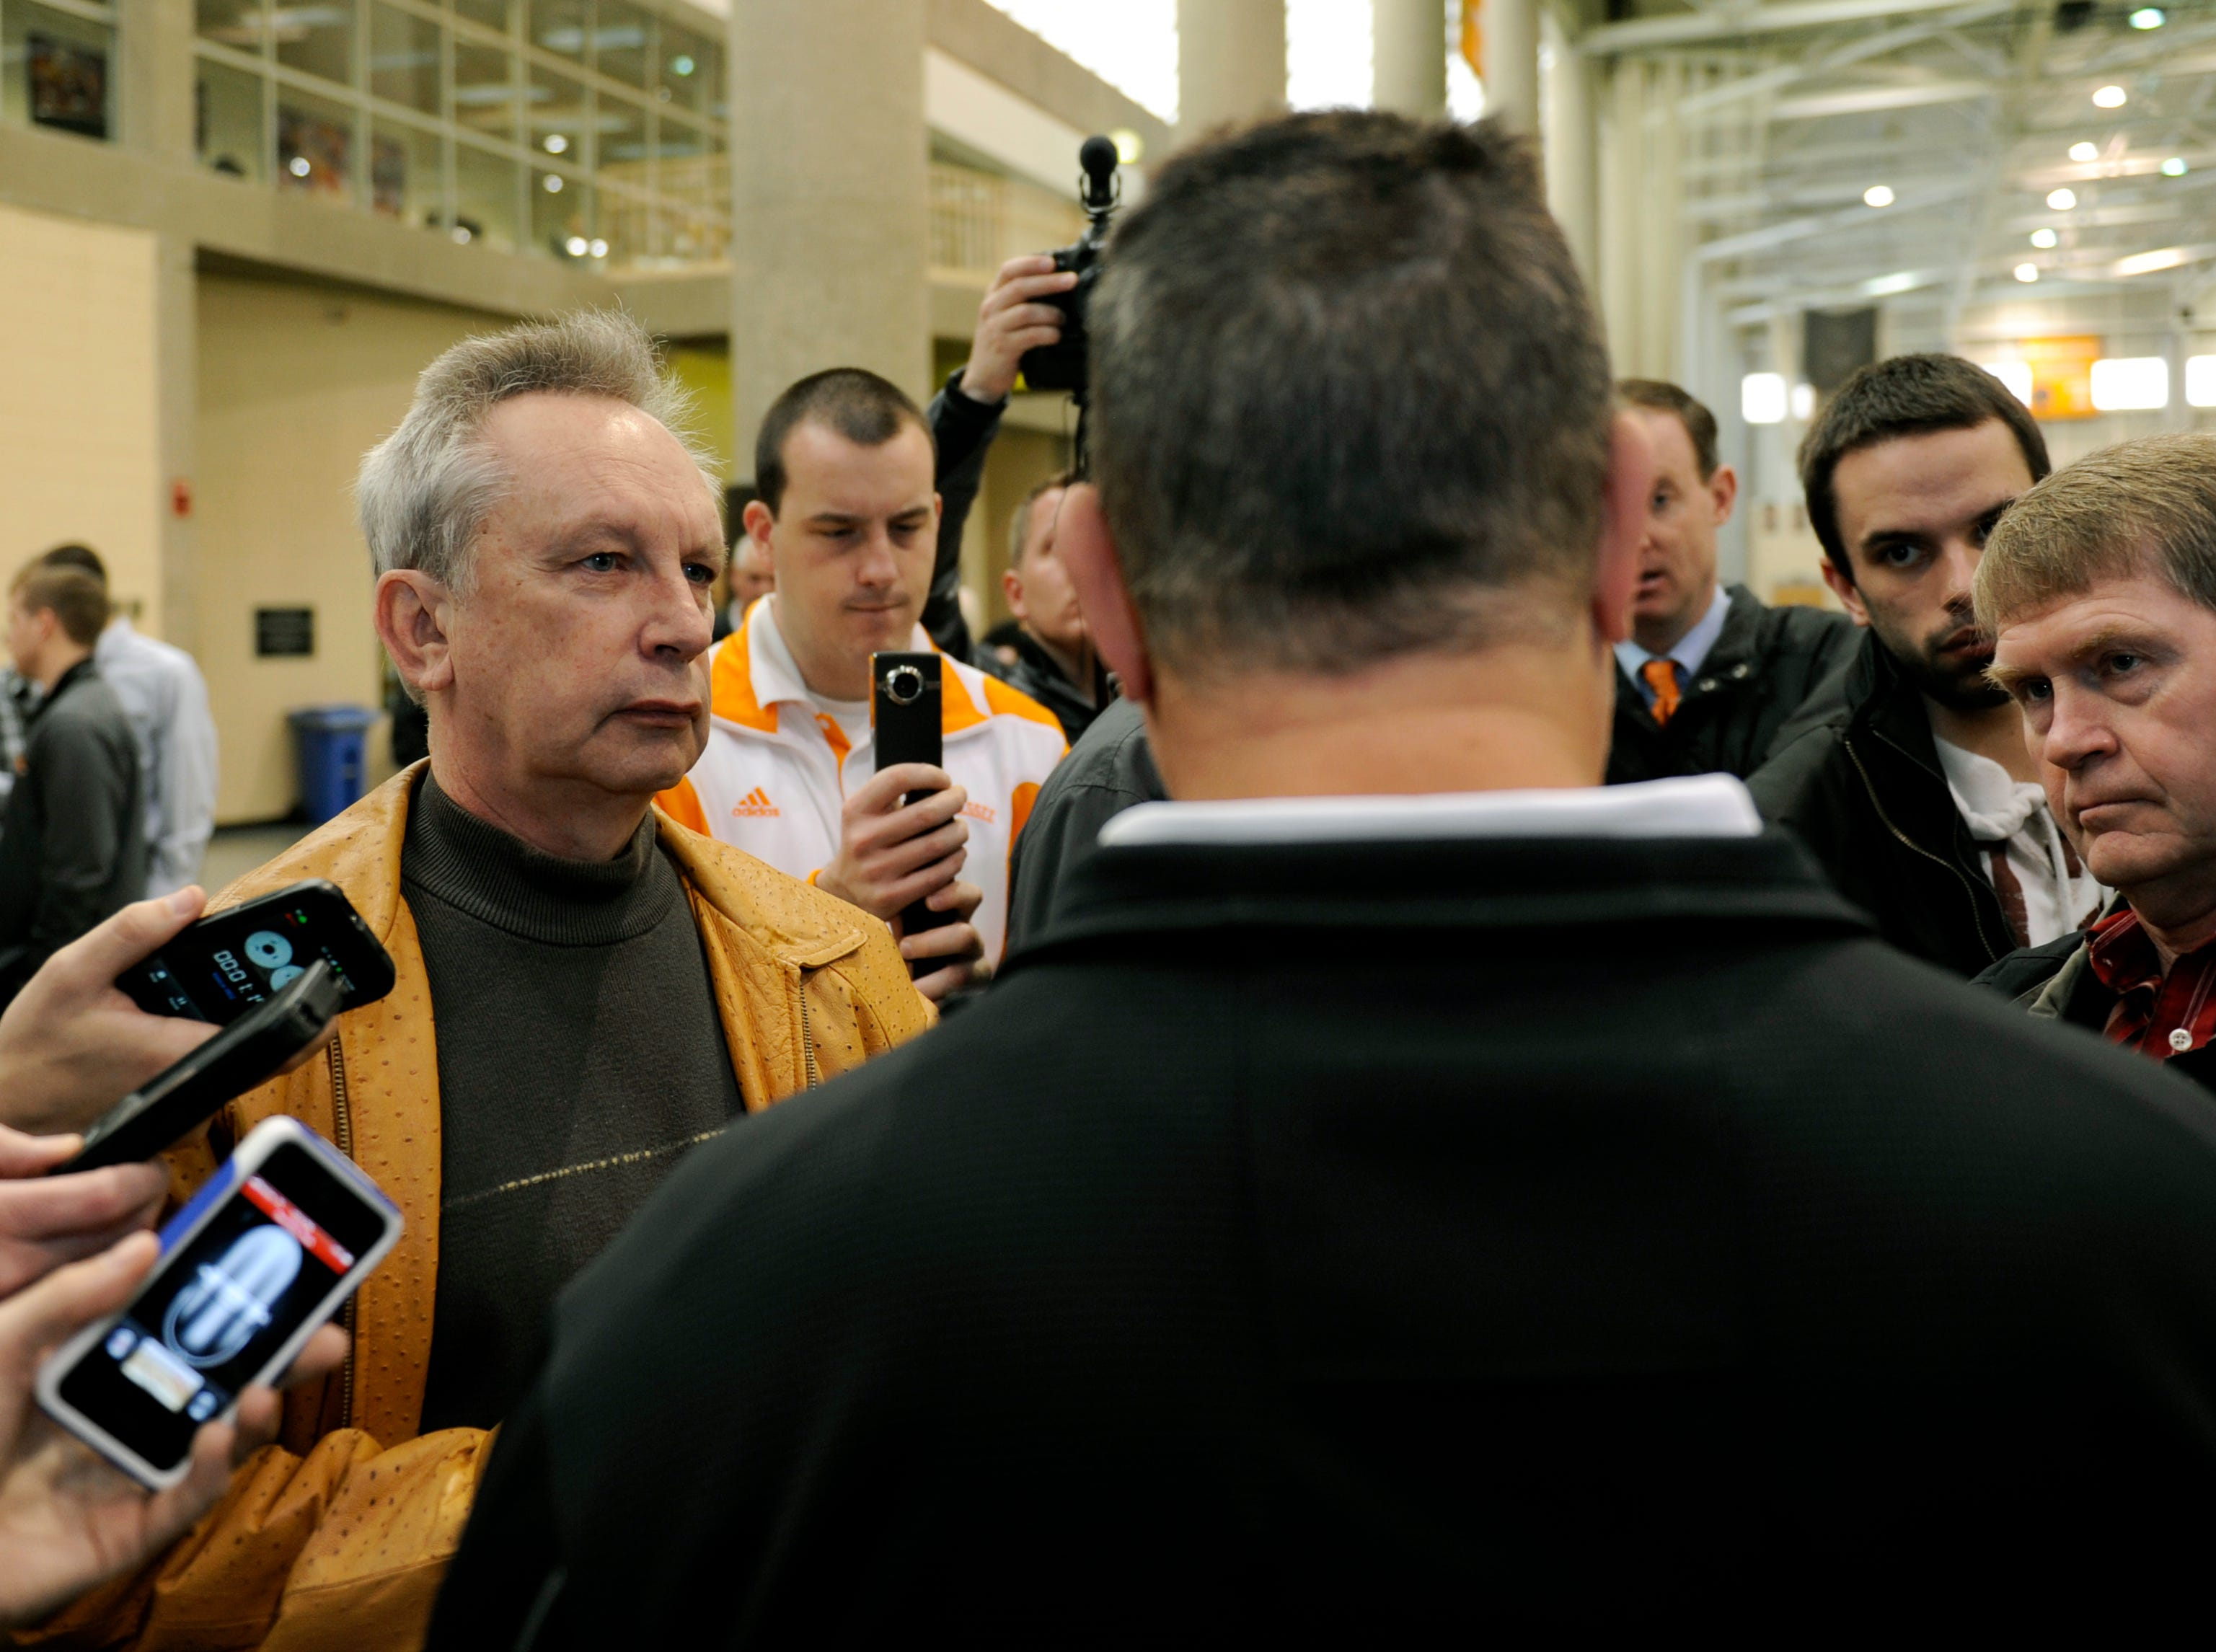 Knoxville News Sentinel sports reporter John Adams, left, and other media members during an interview with a UT assistant football coach Wednesday, Feb. 8, 2012 in the indoor practice facility on campus.